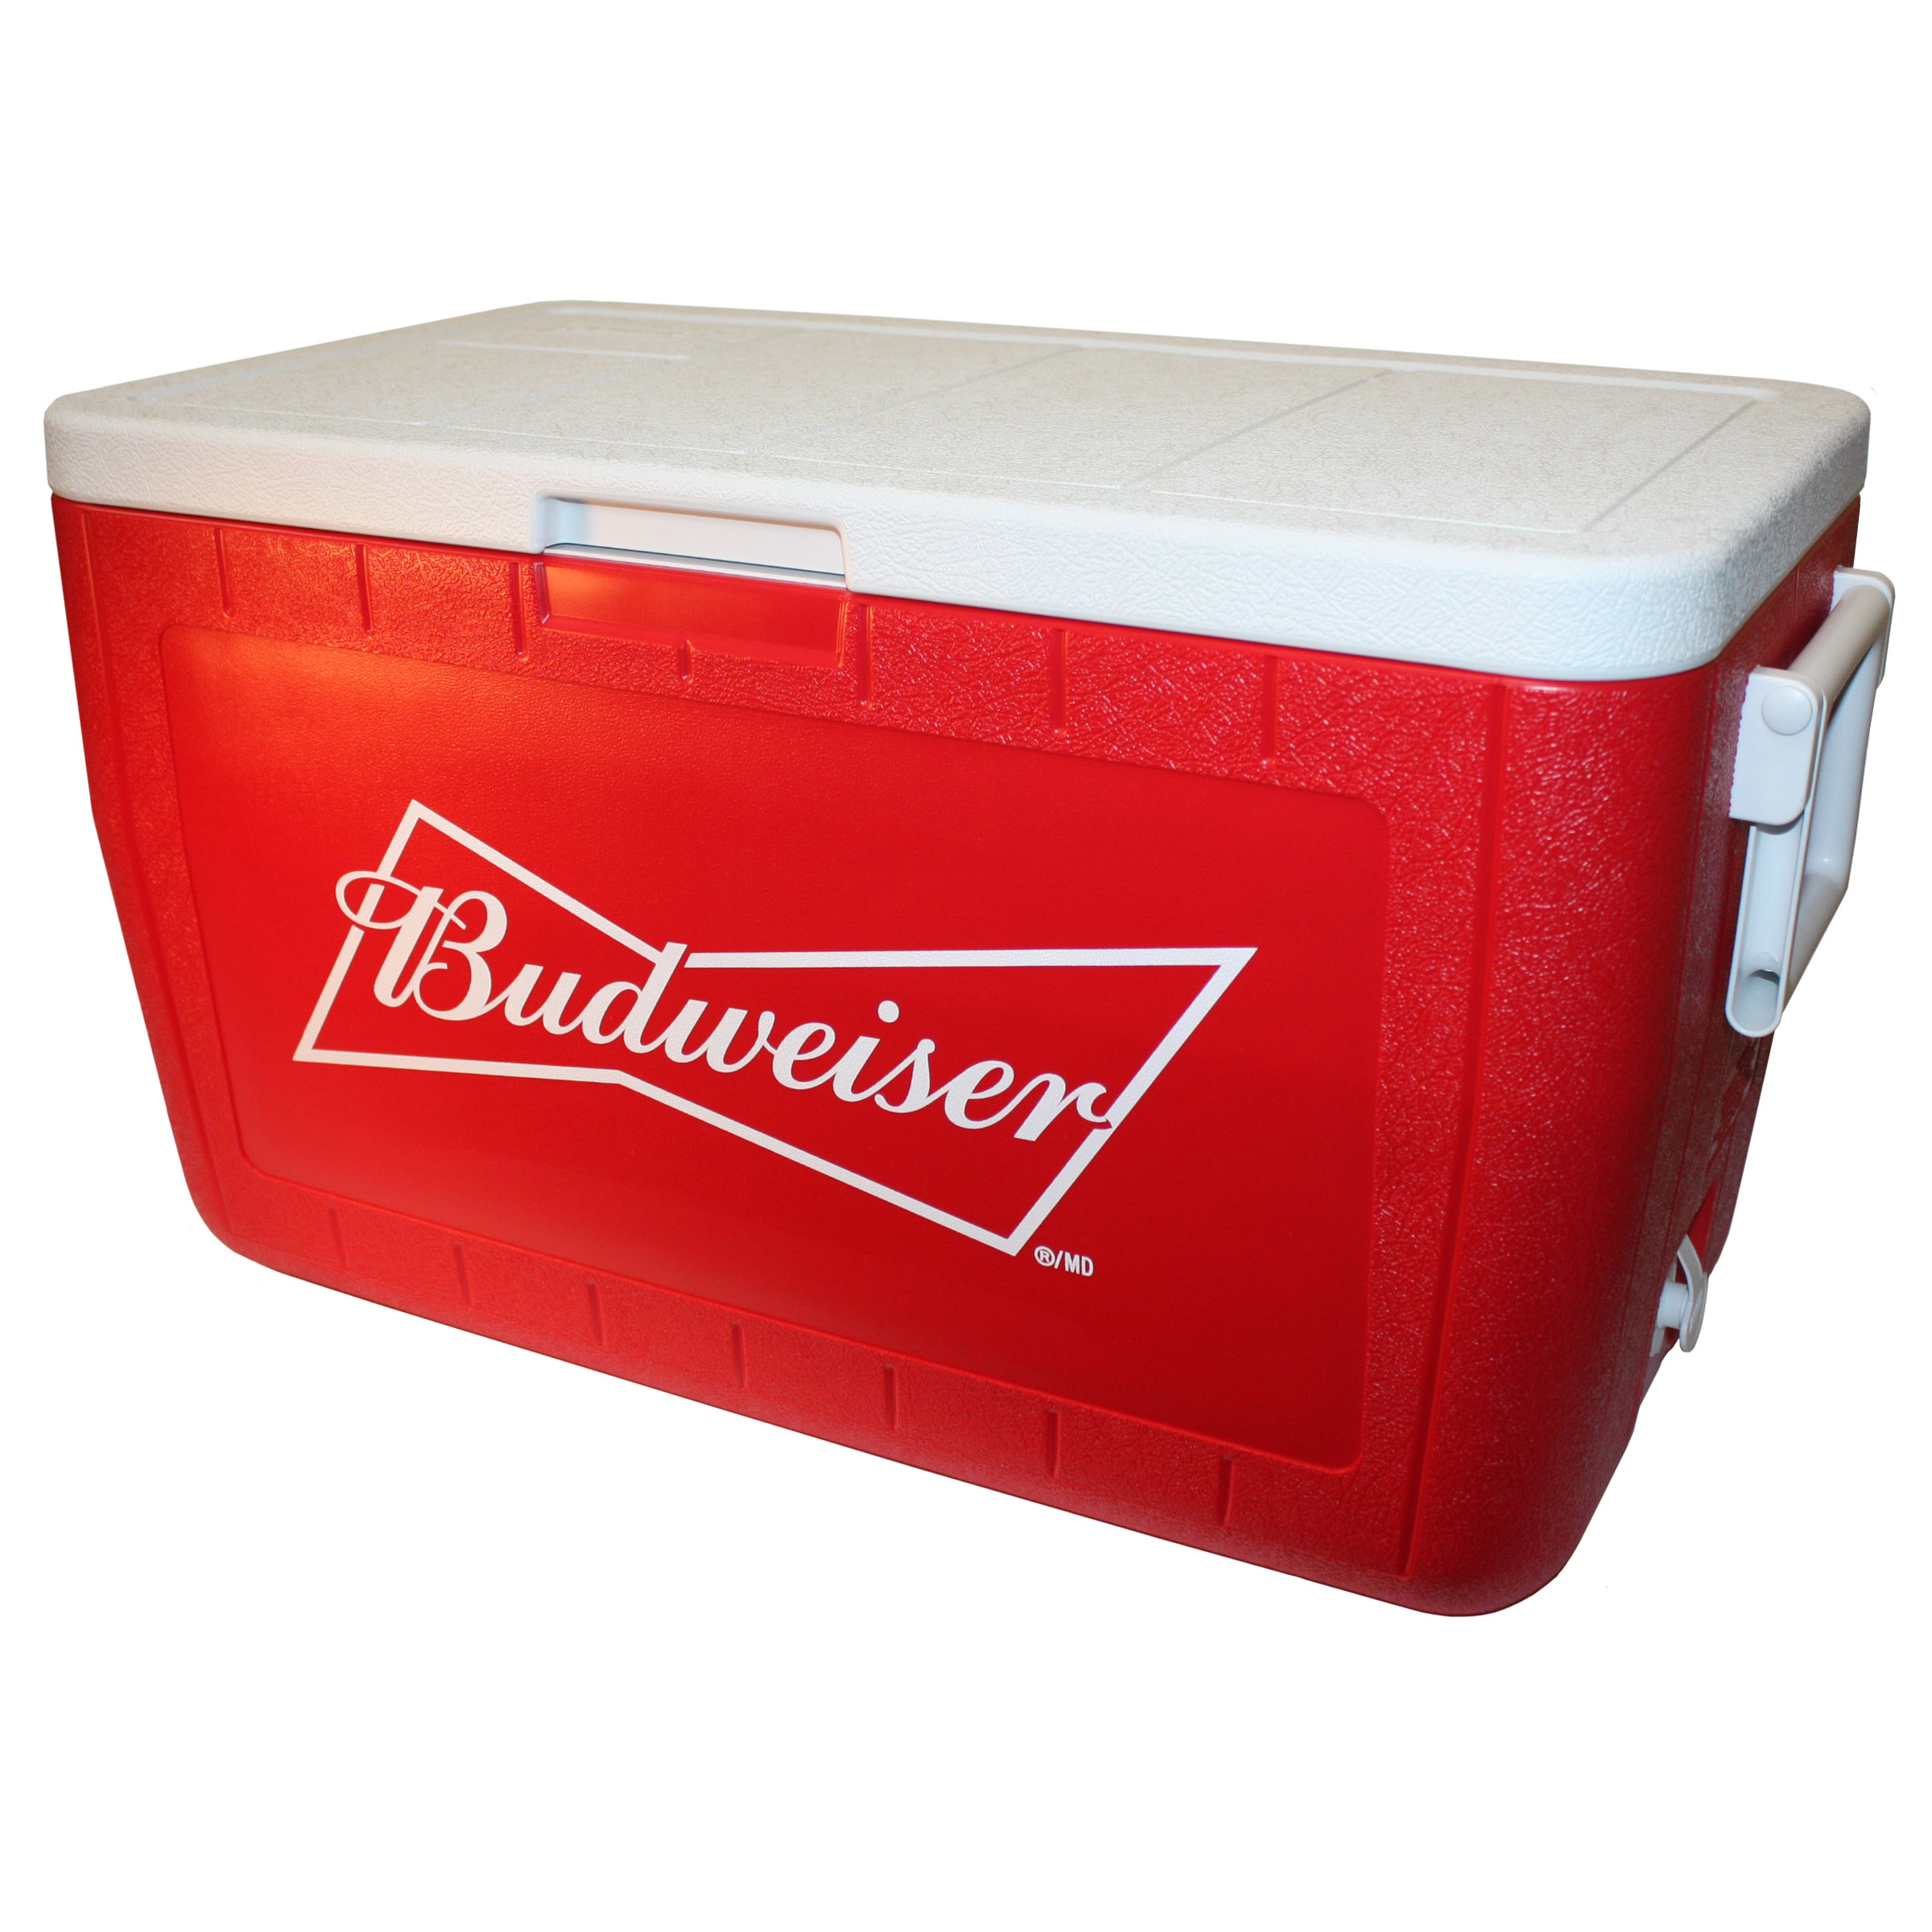 Budweiser logo on Cooler